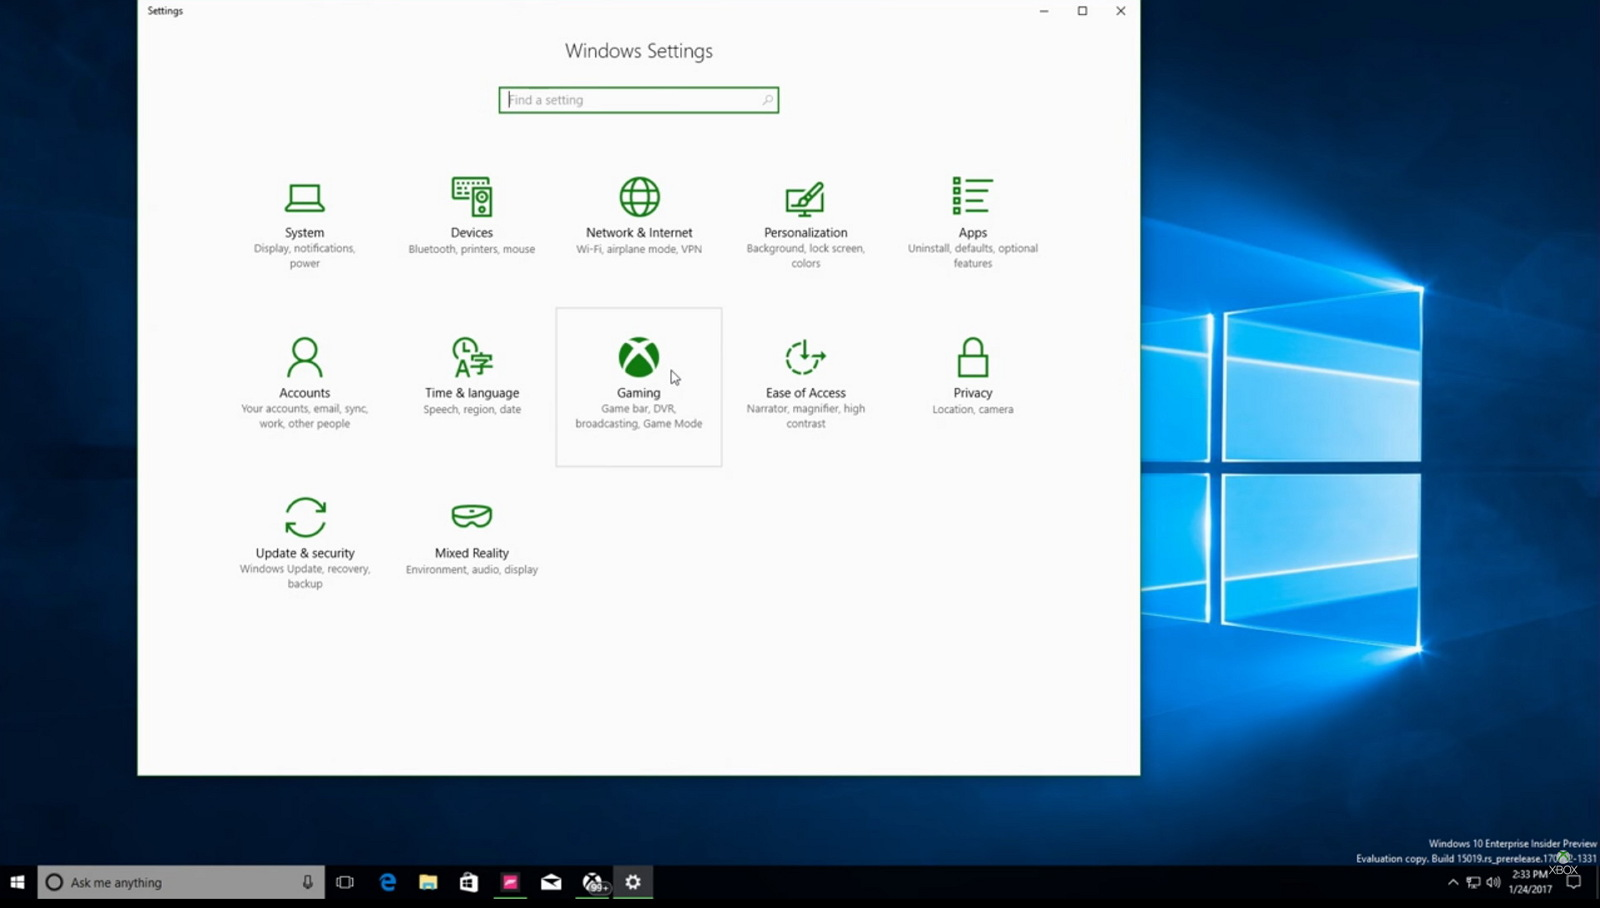 Windows 10 Creators Update Gaming settings